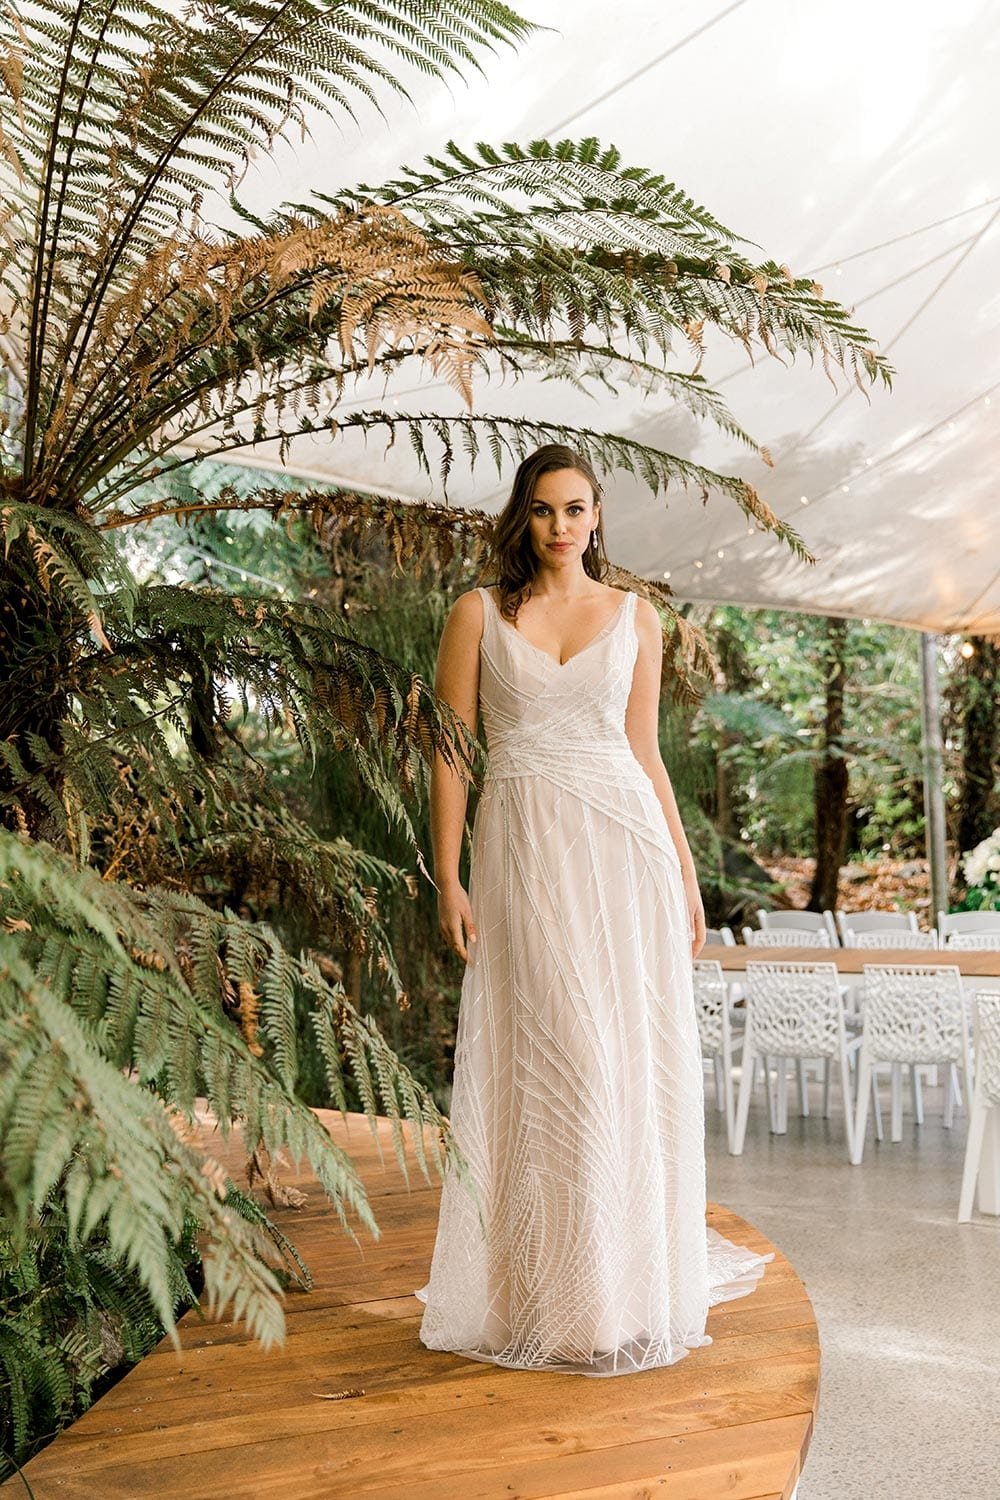 Amber Wedding Dress from Vinka Design. Beautiful wedding dress with V-neckline bodice & V-shaped back on a soft blush/light nude base. Rich beading sculpts the waist & relaxed-fit skirt falls to a train. Full length of dress from the front. Photographed at Tui Hills by Emmaline Photography.